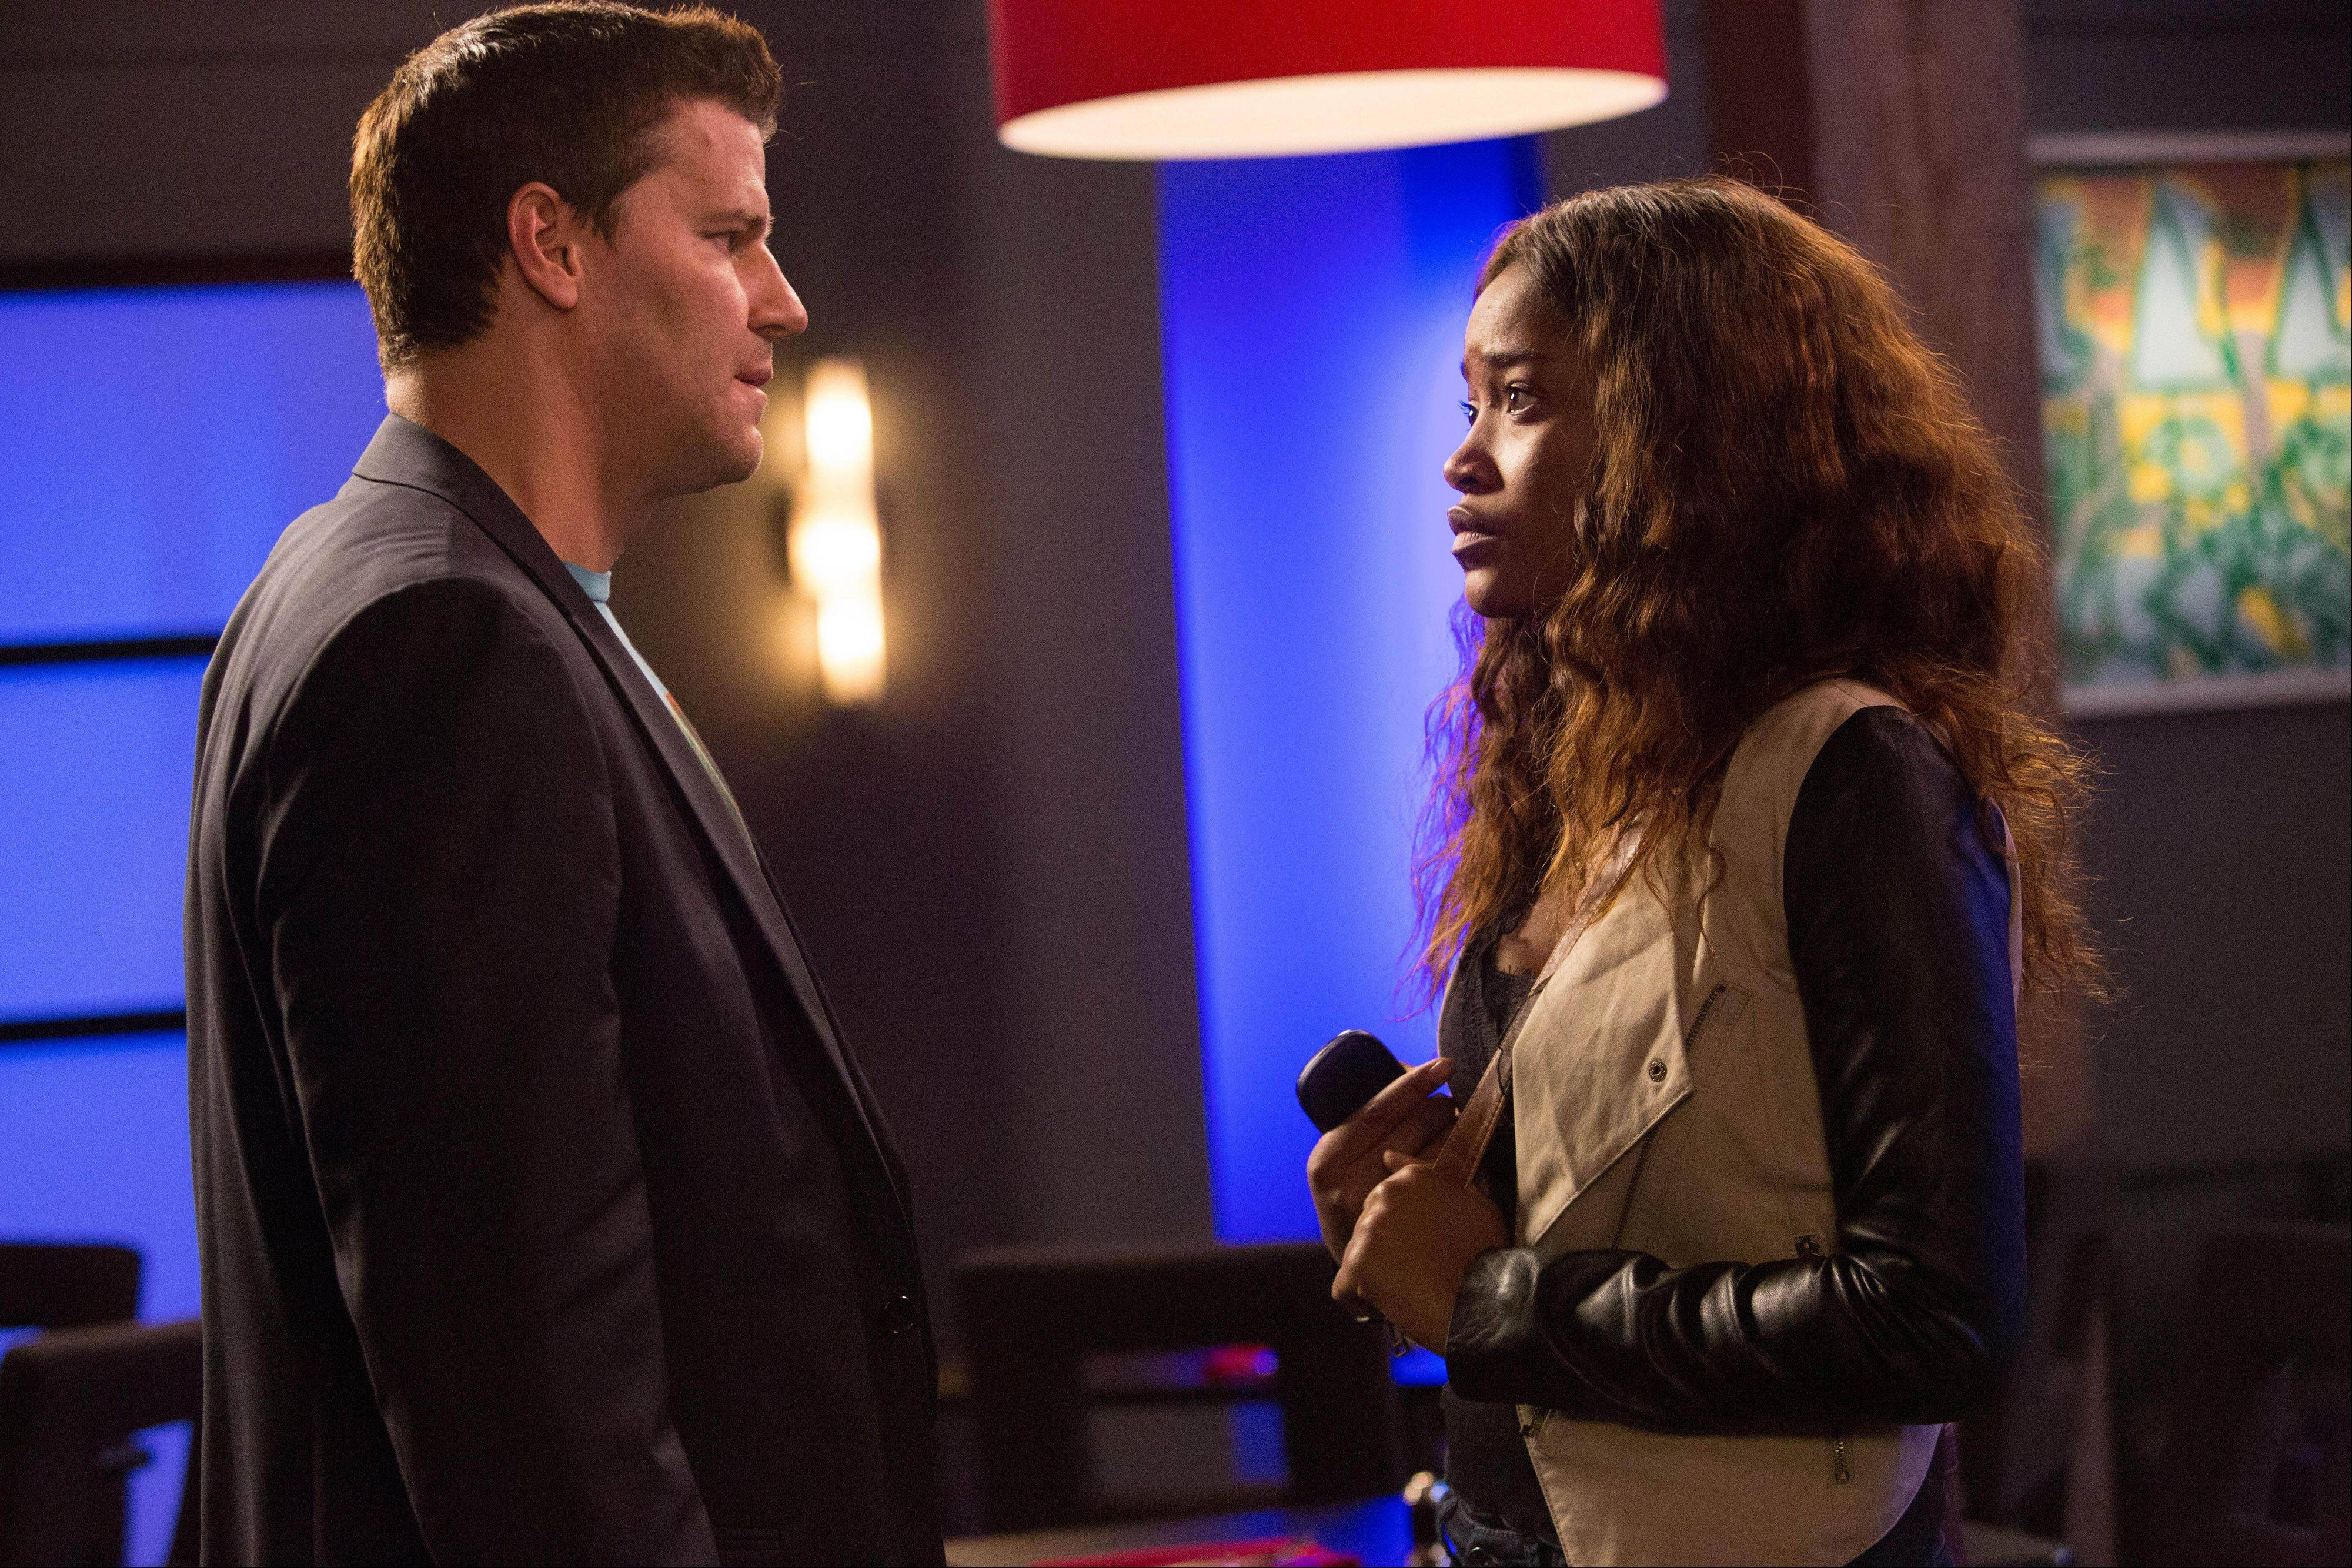 David Boreanaz and Keke Palmer are just two of the stars in the DirecTV ensemble drama �Full Circle,� by filmmaker and playwright Neil Labute. LaBute wrote the 10-episode drama, airing at 8 p.m. Wednesdays on DirecTV.